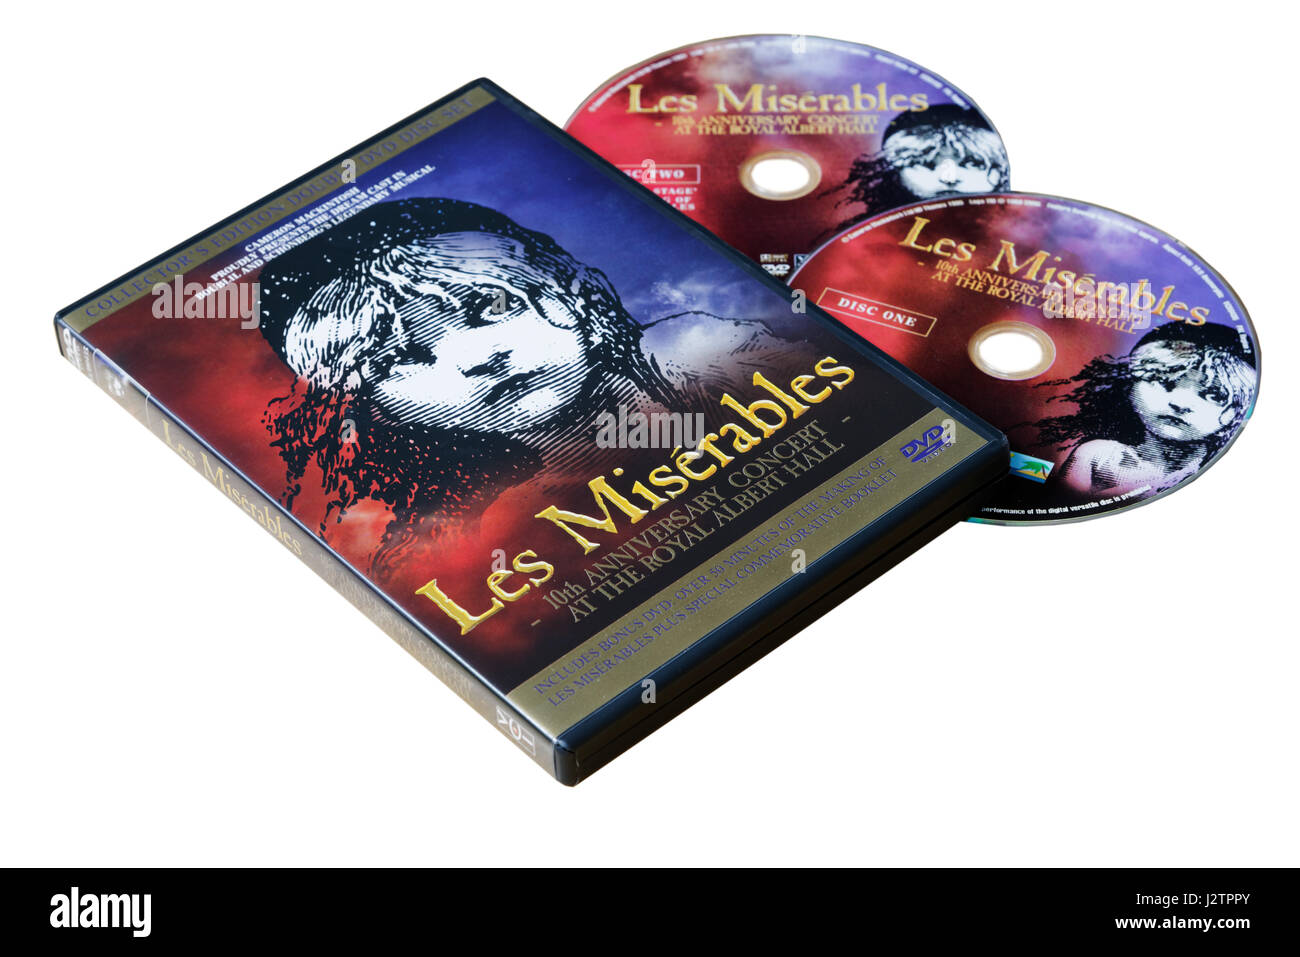 Les Miserables DVD - the 10th Anniversary show at the Royal Albert Hall - Stock Image